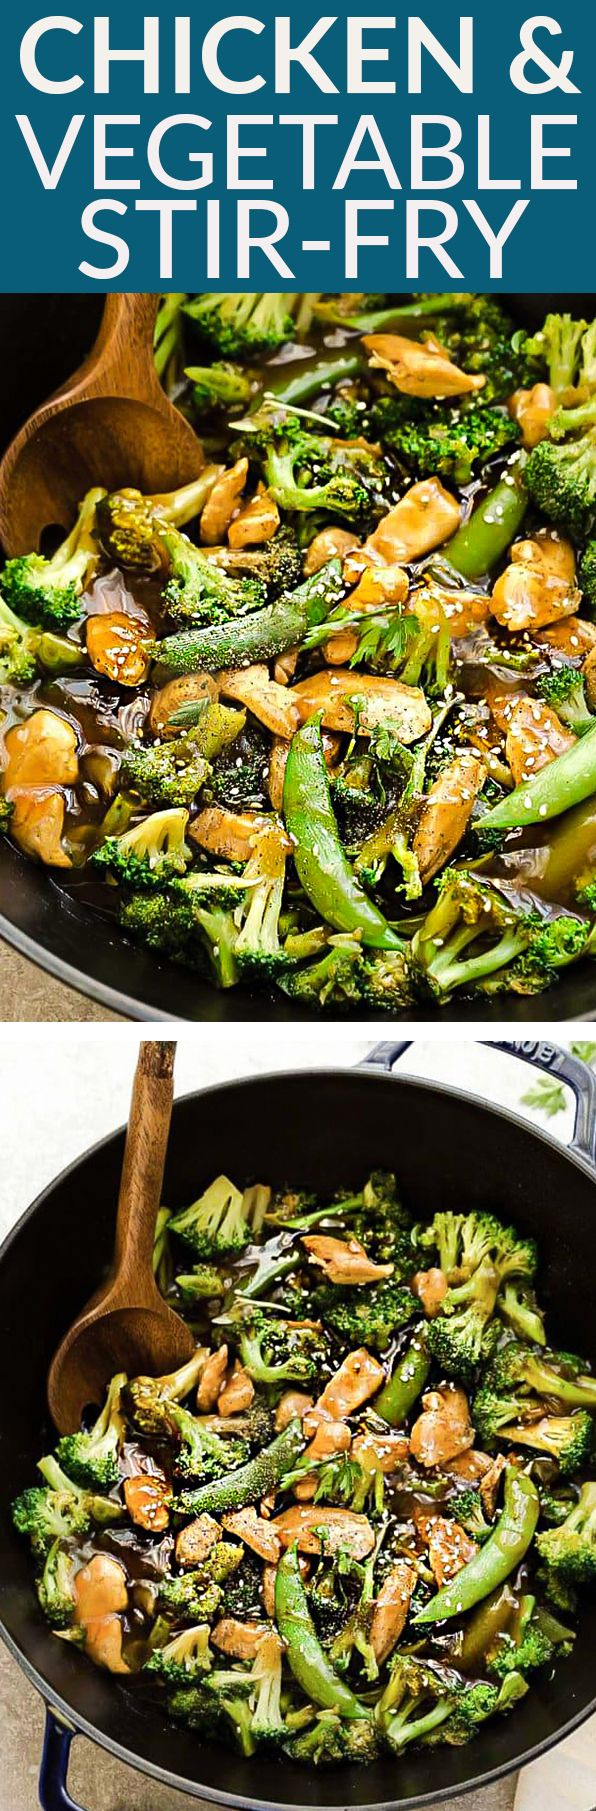 Chicken Stir Fry with Broccoli Snap Peas is the perfect easy weeknight meal. Best of all, this recipe comes together in under 30 minutes with your favorite vegetables and sticky and savory Asian sauce. Great for Sunday meal prep for work or school lunchboxes or lunch bowls. Full of flavor and way better than takeout! #STIRFRY #FAKEOUTTAKEOUT #BROCCOLI #CHICKEN #RECIPE #DINNER #HEALTHY